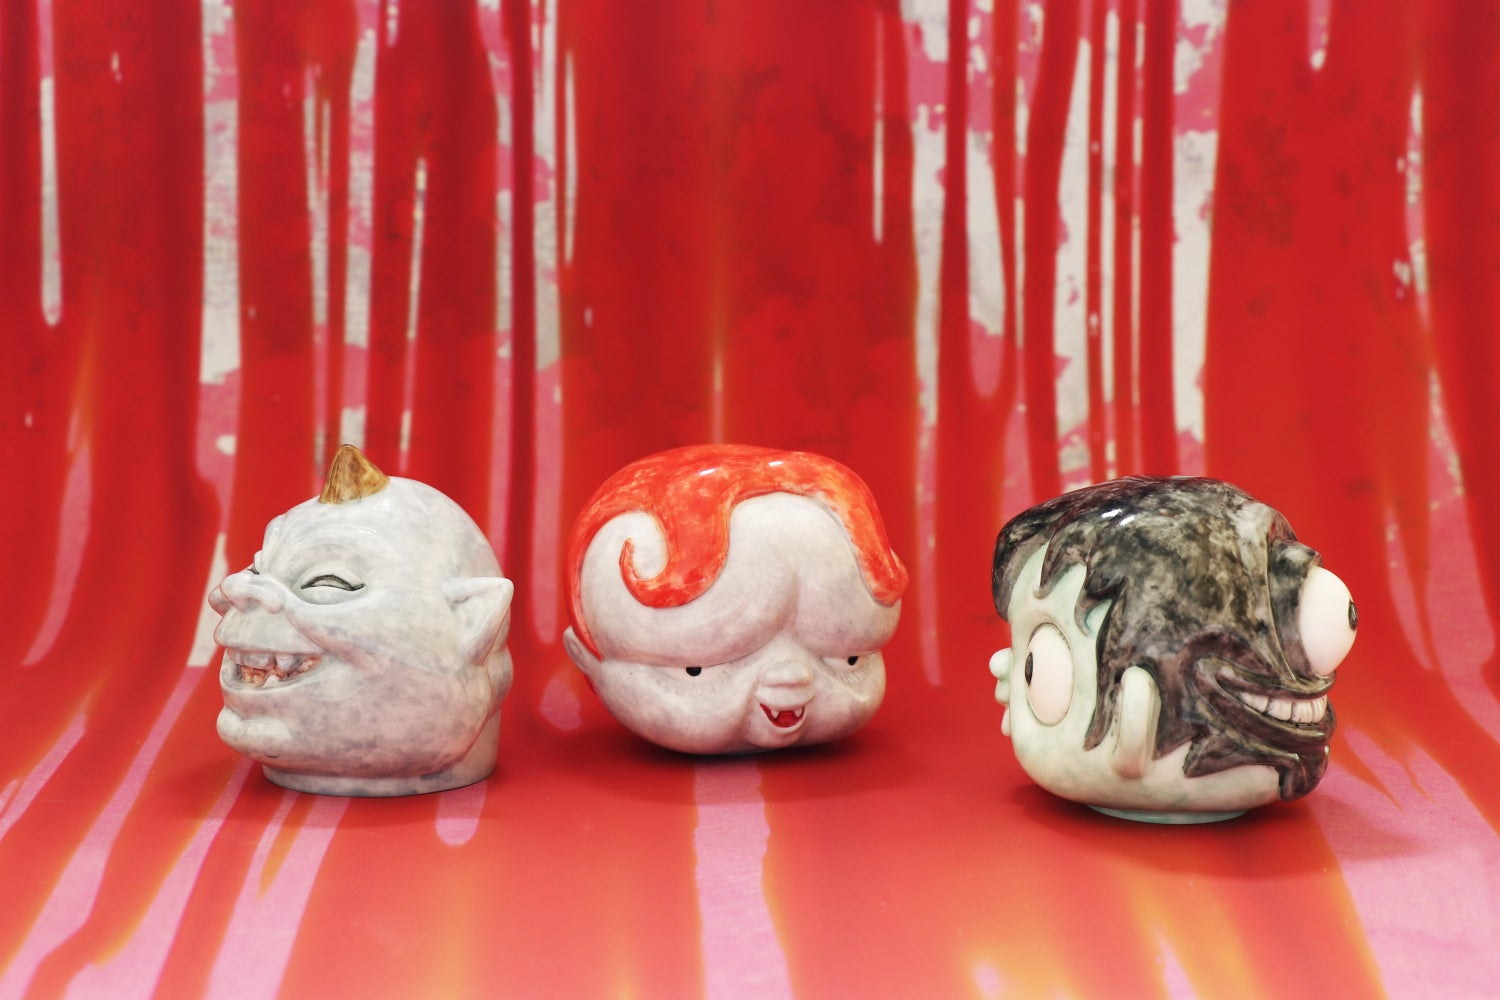 Image of HIDESHI HINO MAMUSHINBO 'HEAD SERIES' PRE-ORDER